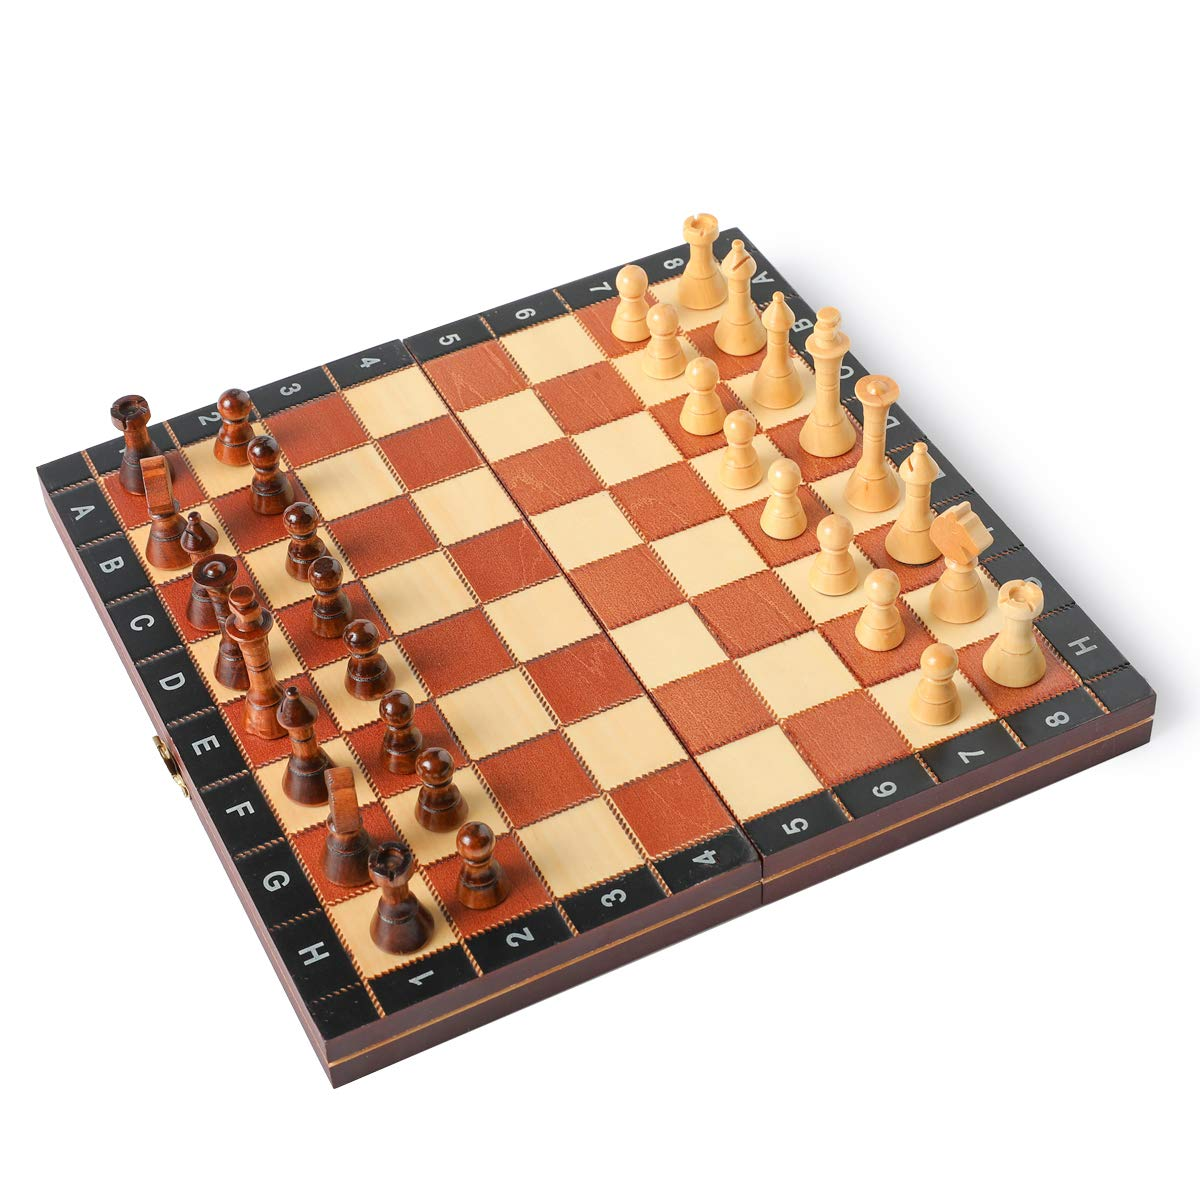 """HOLYKING 10.6"""" Folding Wooden Chess Set - Portable No Stress Travel Chess Game Set with Storage Bags"""